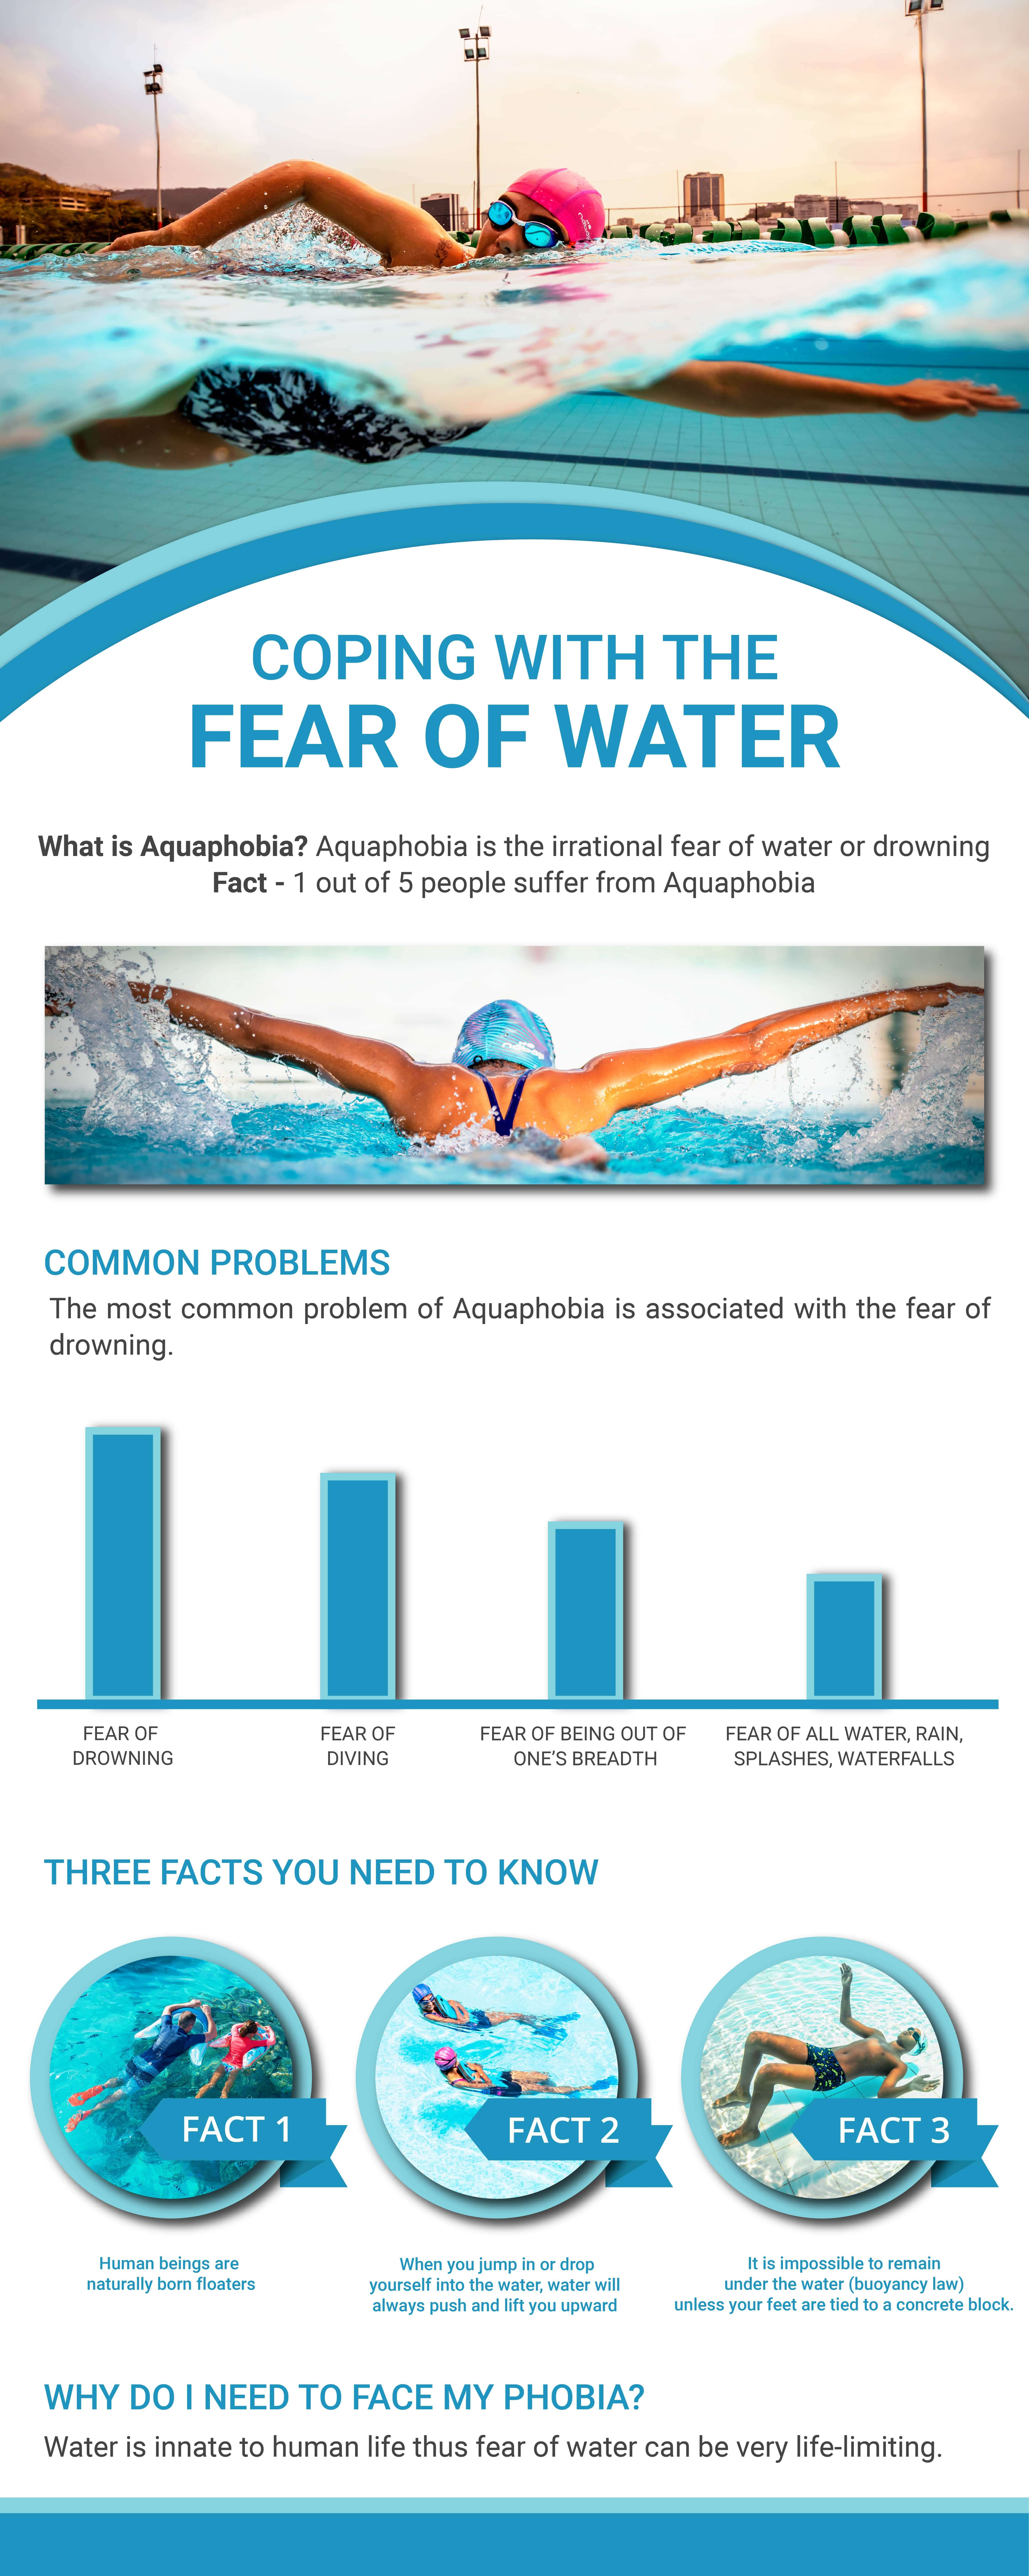 Coping with the Fear of Water